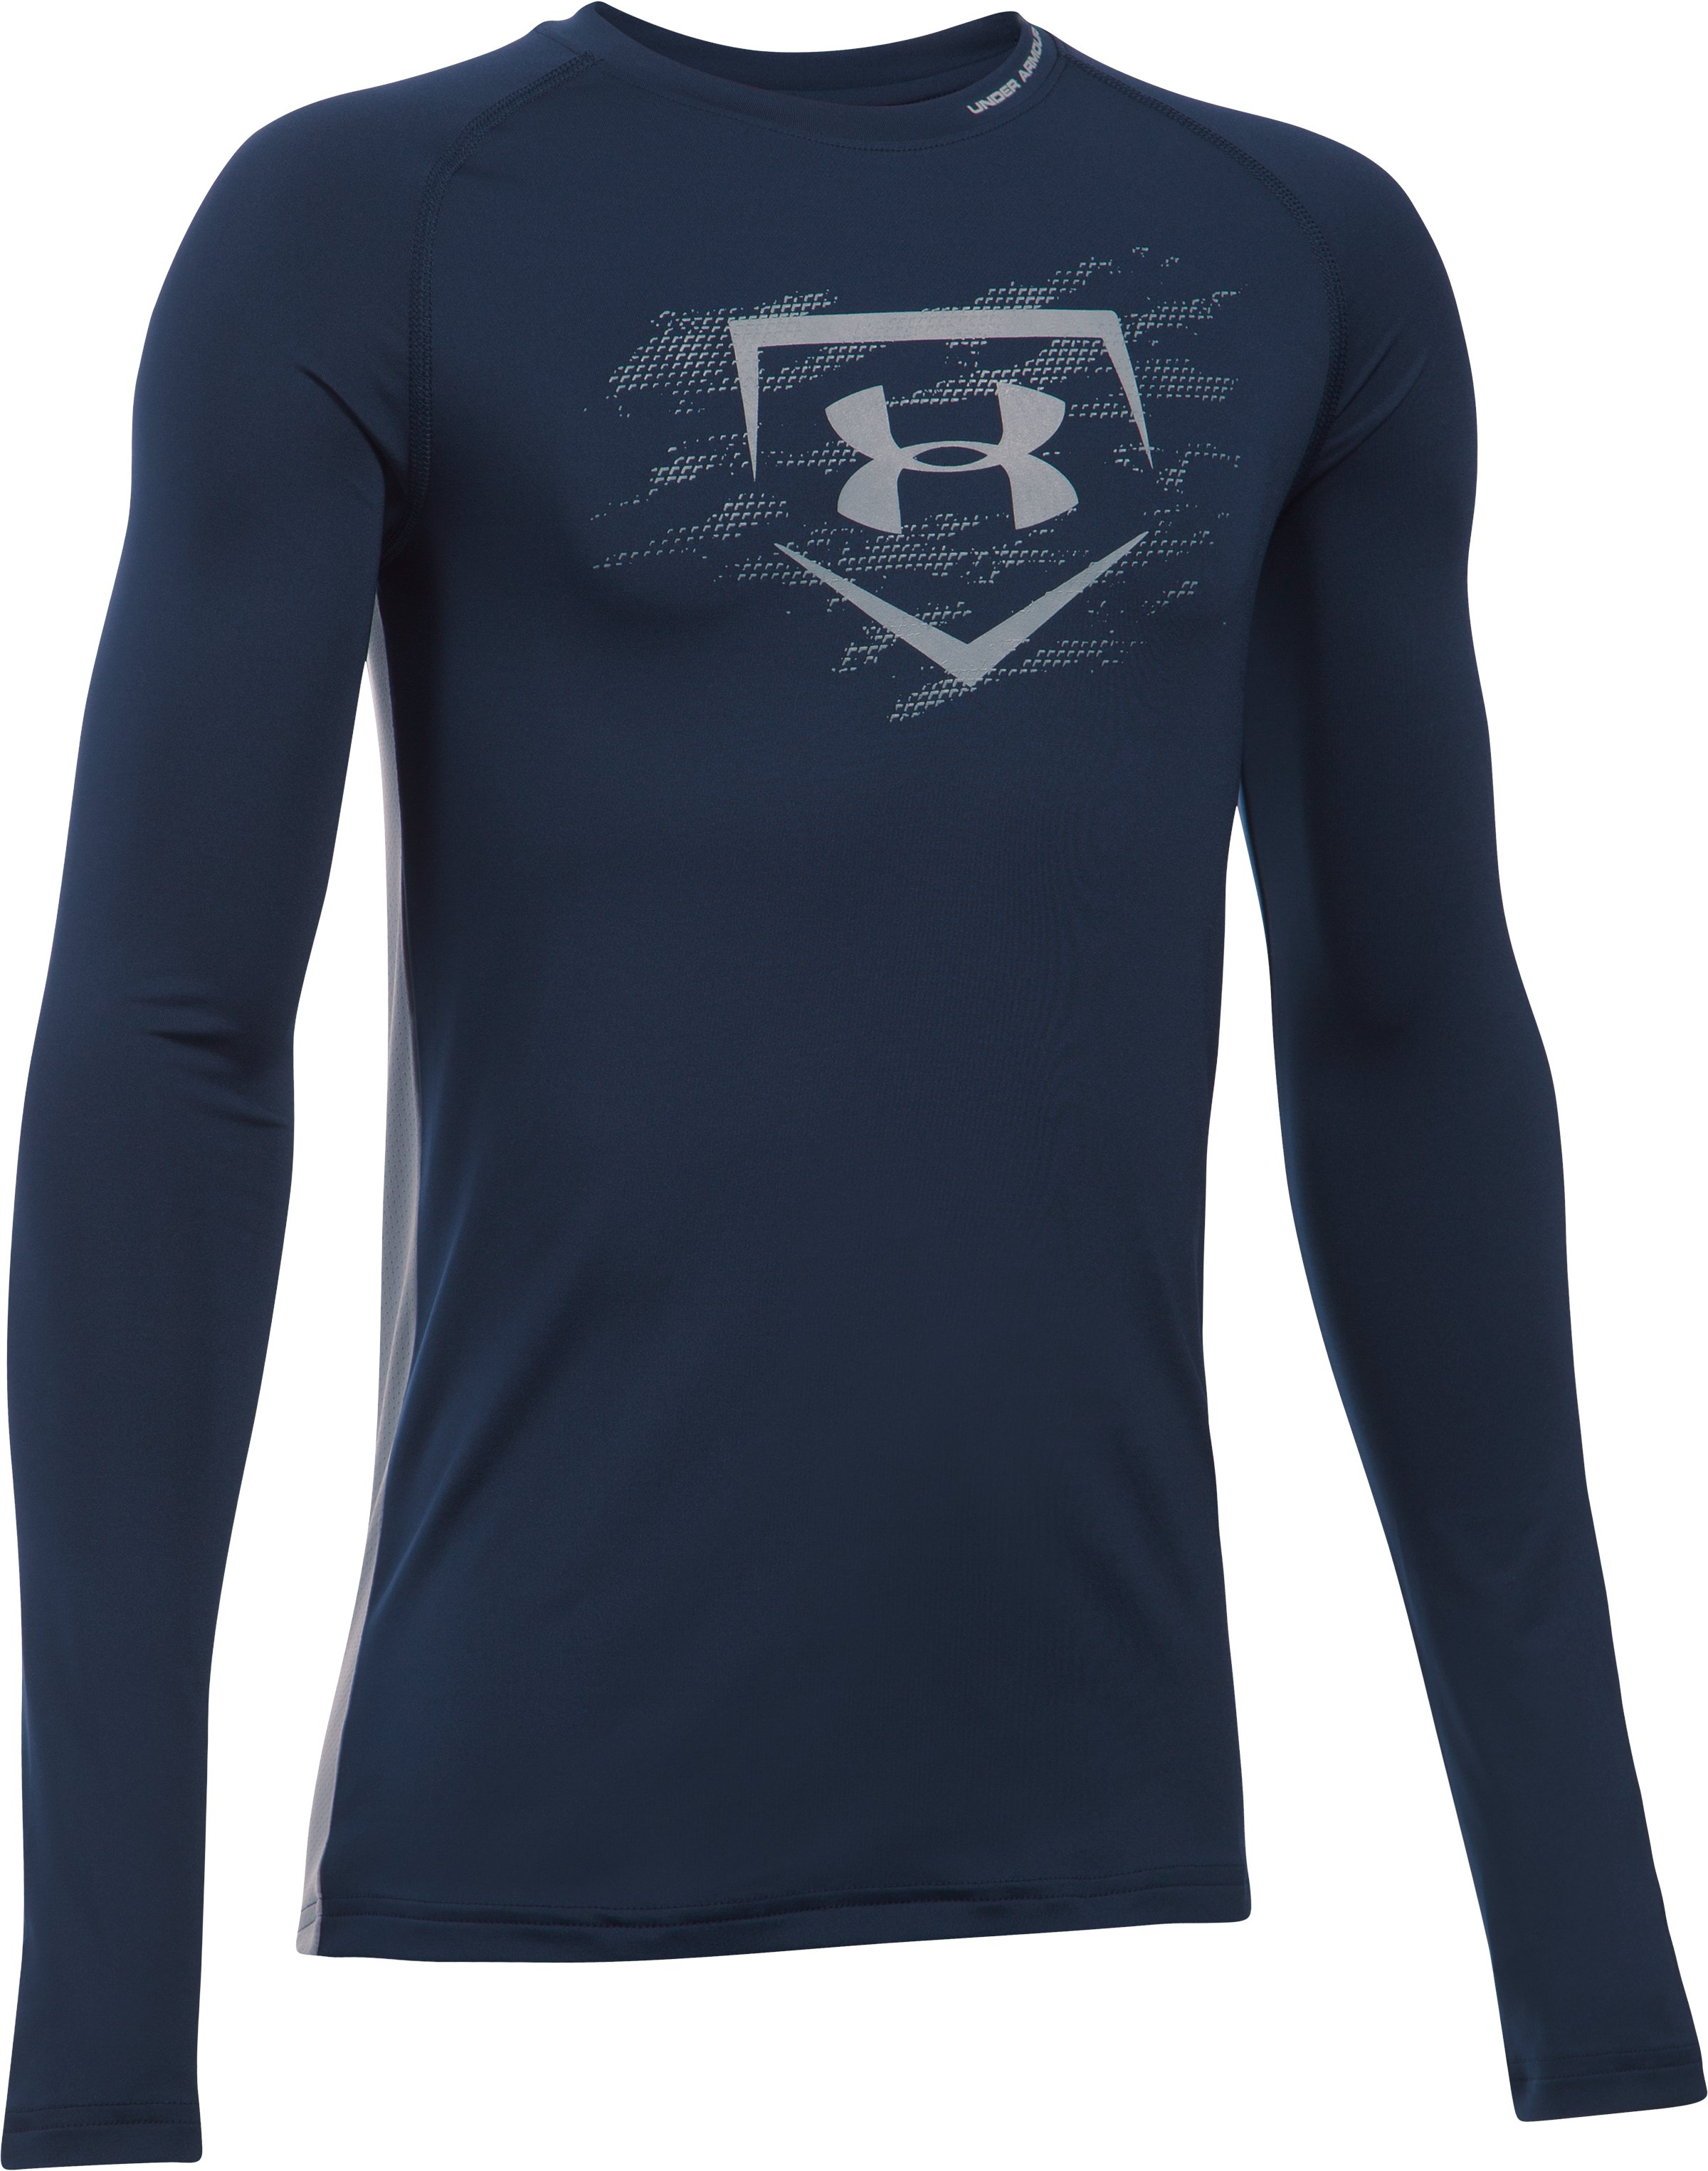 Boys' UA Diamond Long Sleeve Shirt, Midnight Navy